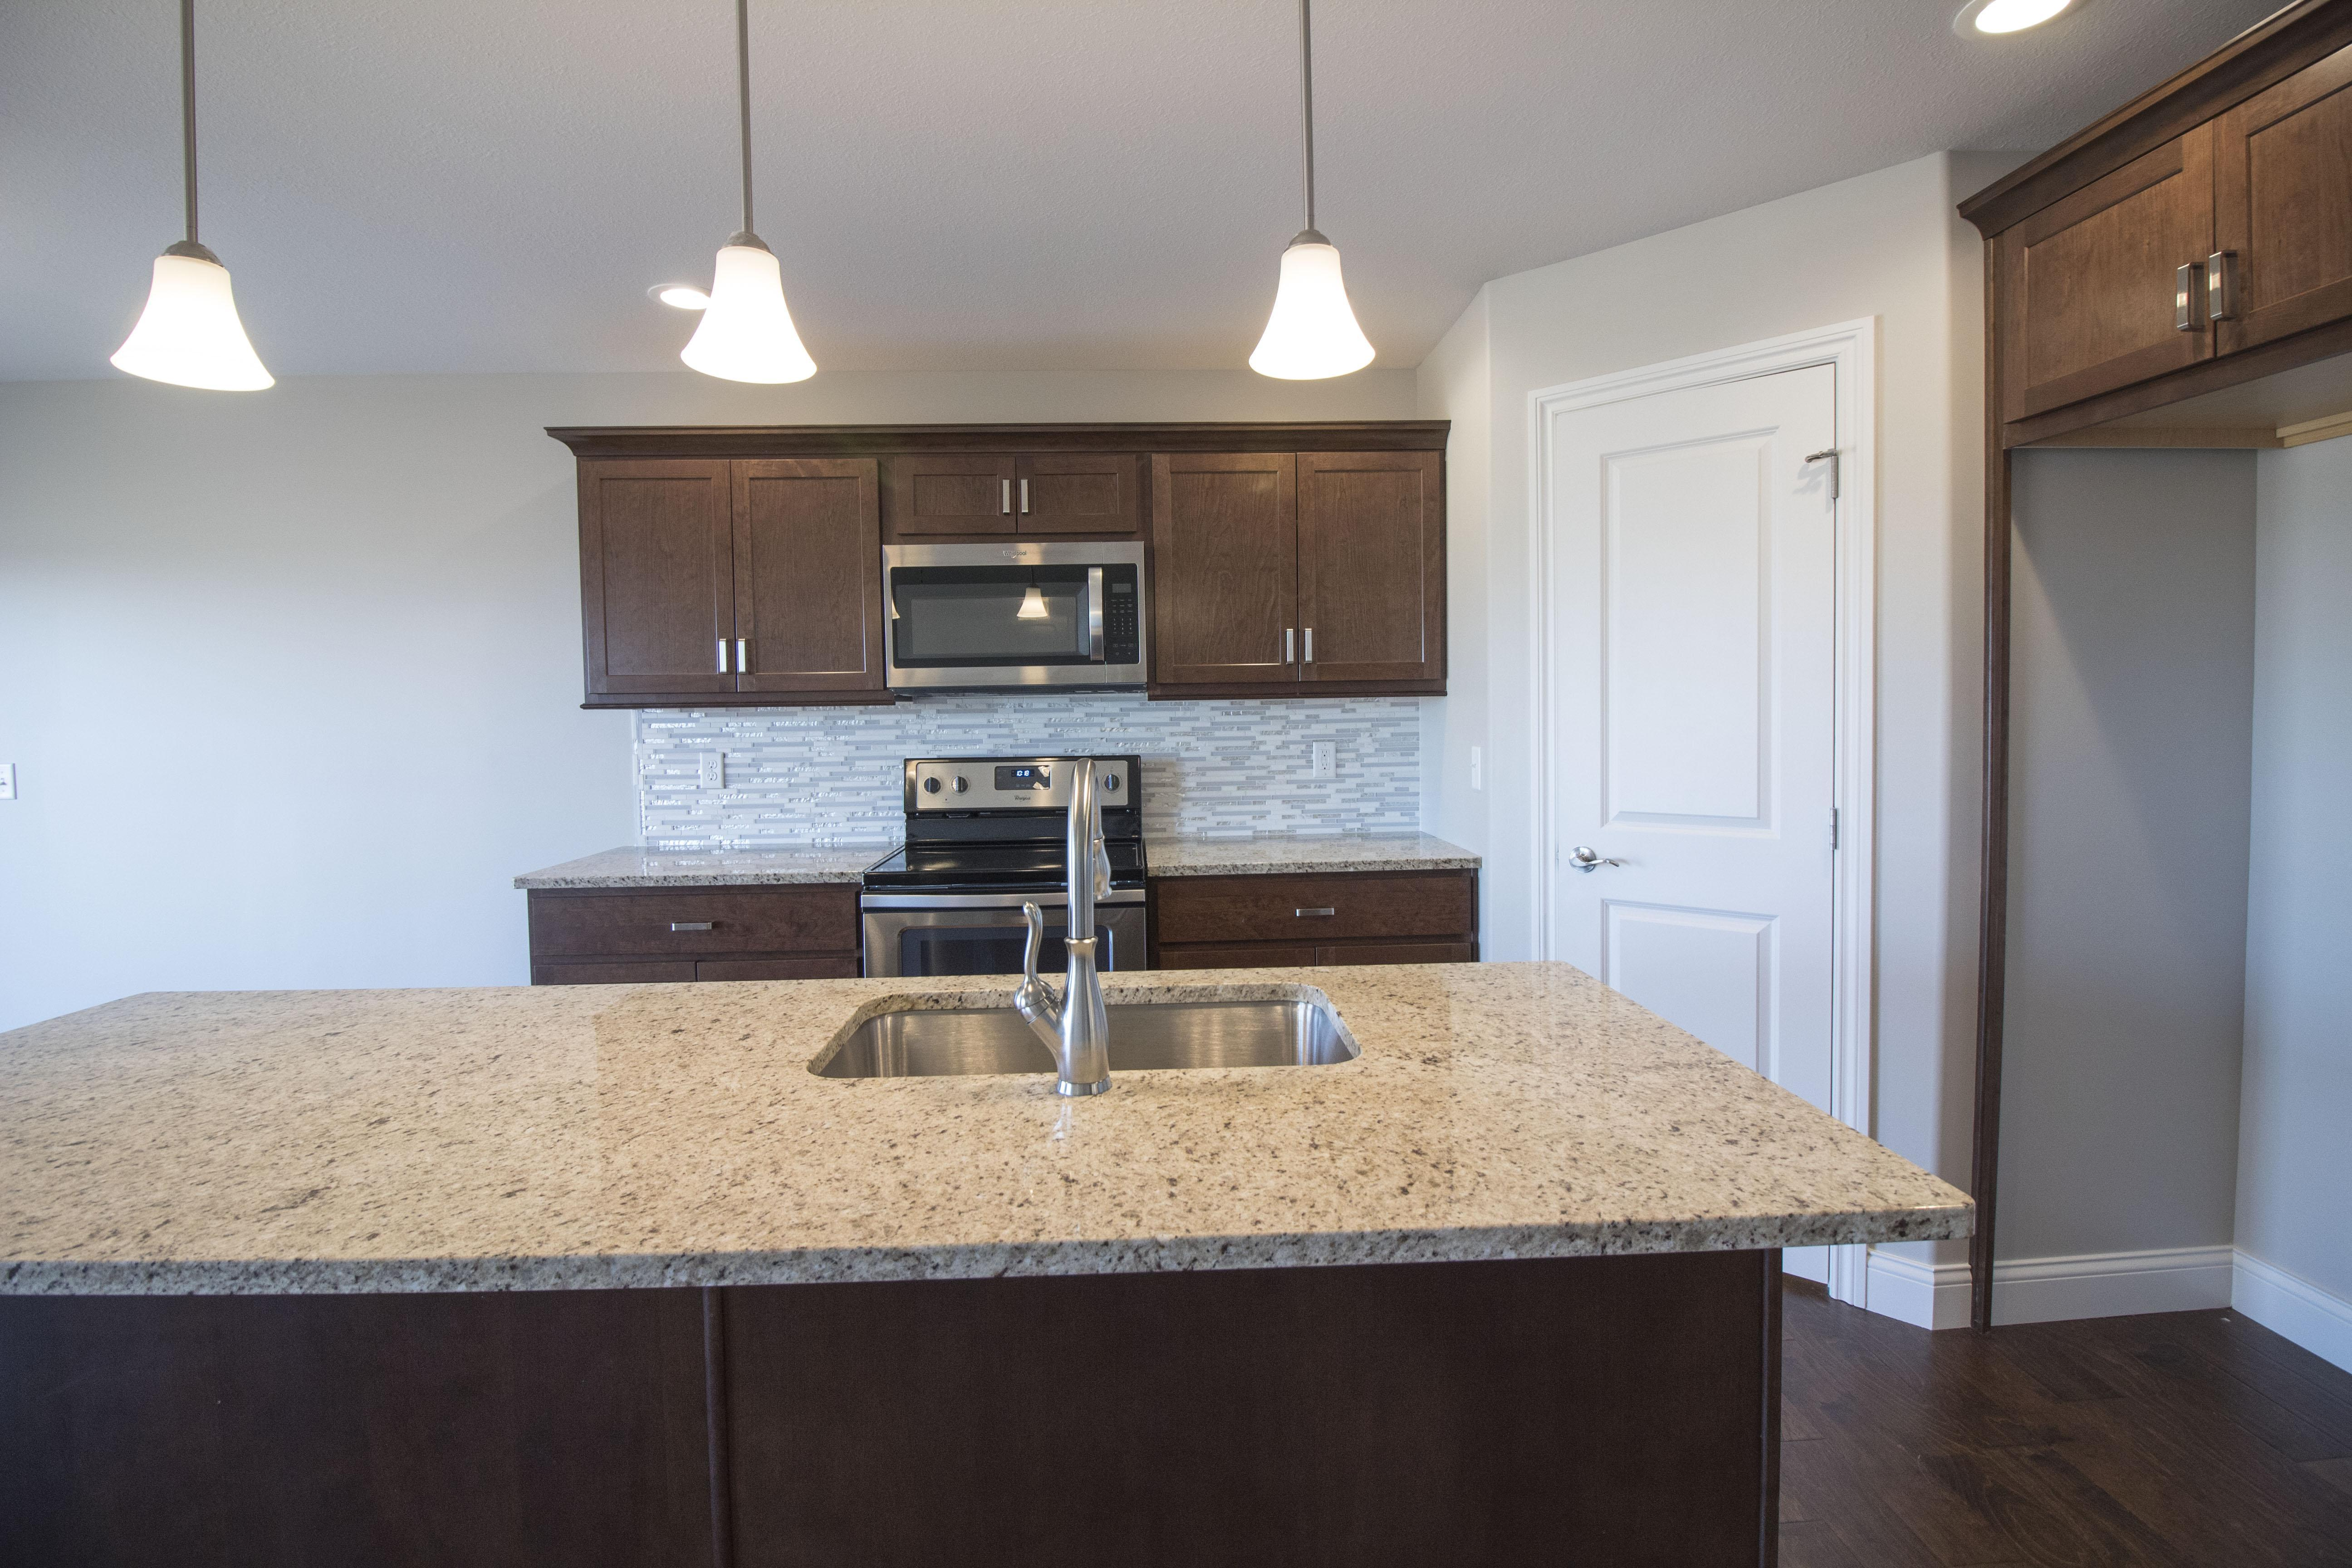 Kitchen featured in the Douglas II By Unlimited Homes in Champaign-Urbana, IL